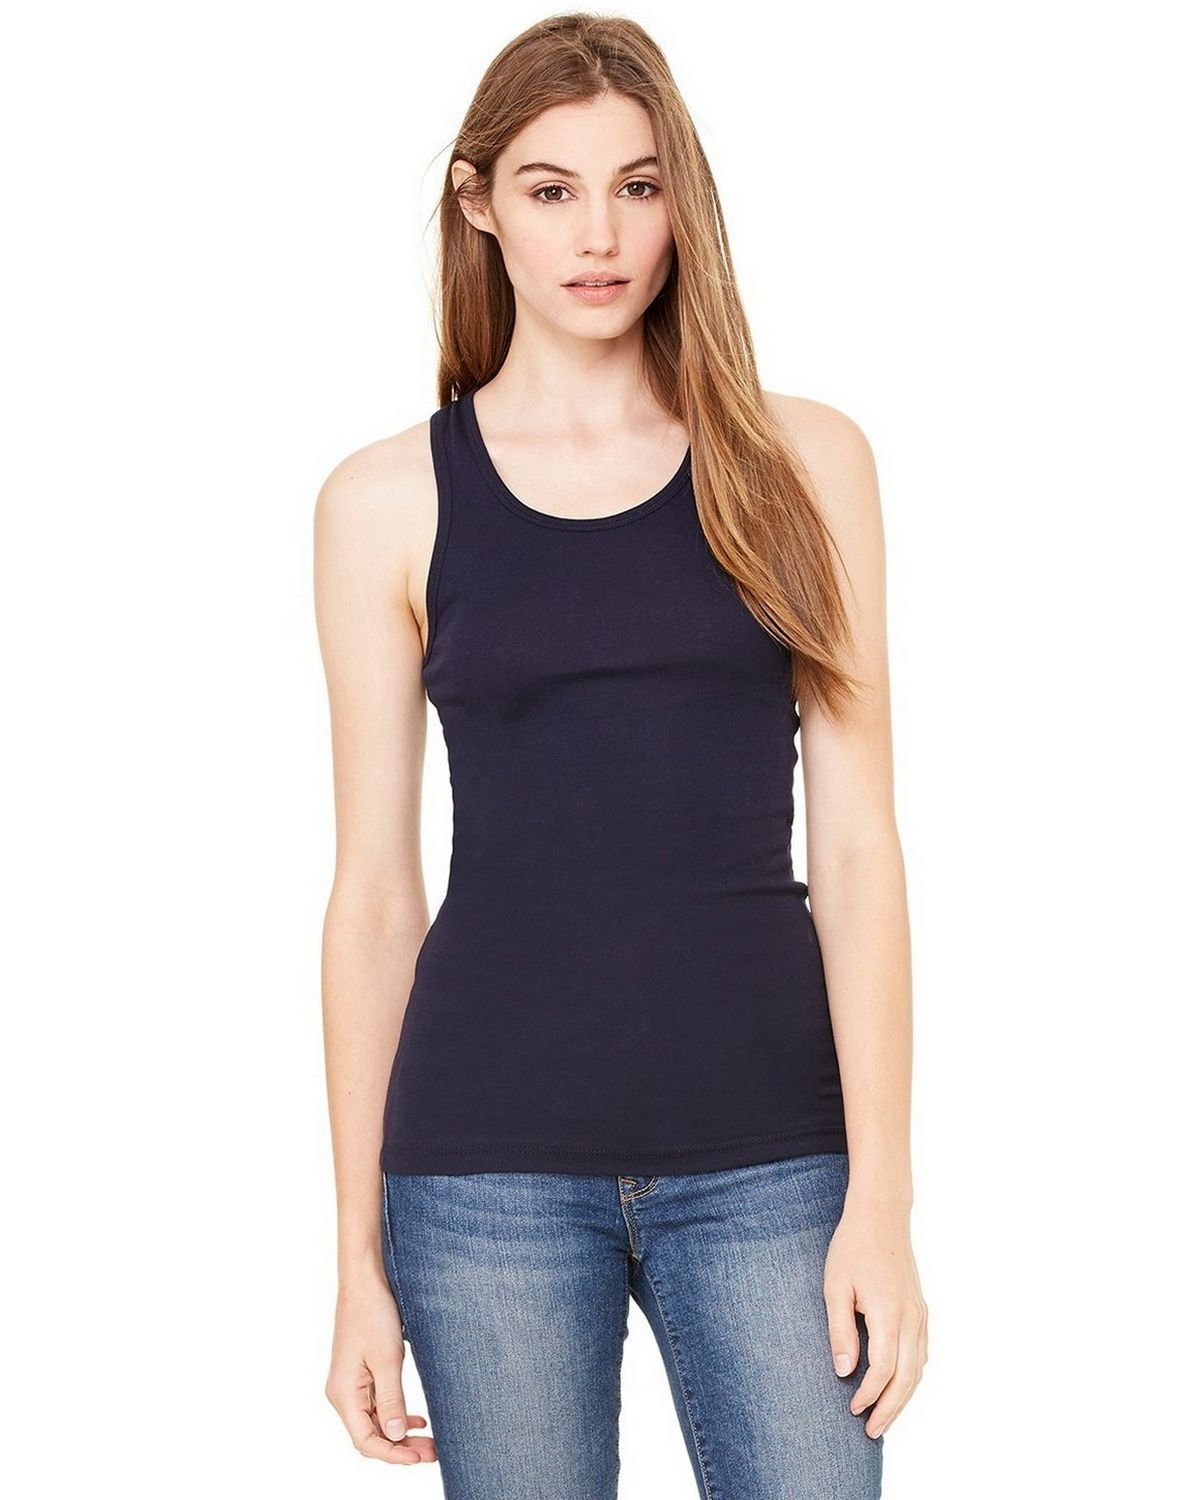 Bella + Canvas 8770 Ladies Meredith Sheer Rib Racerback Tank - Midnight - XL 8770